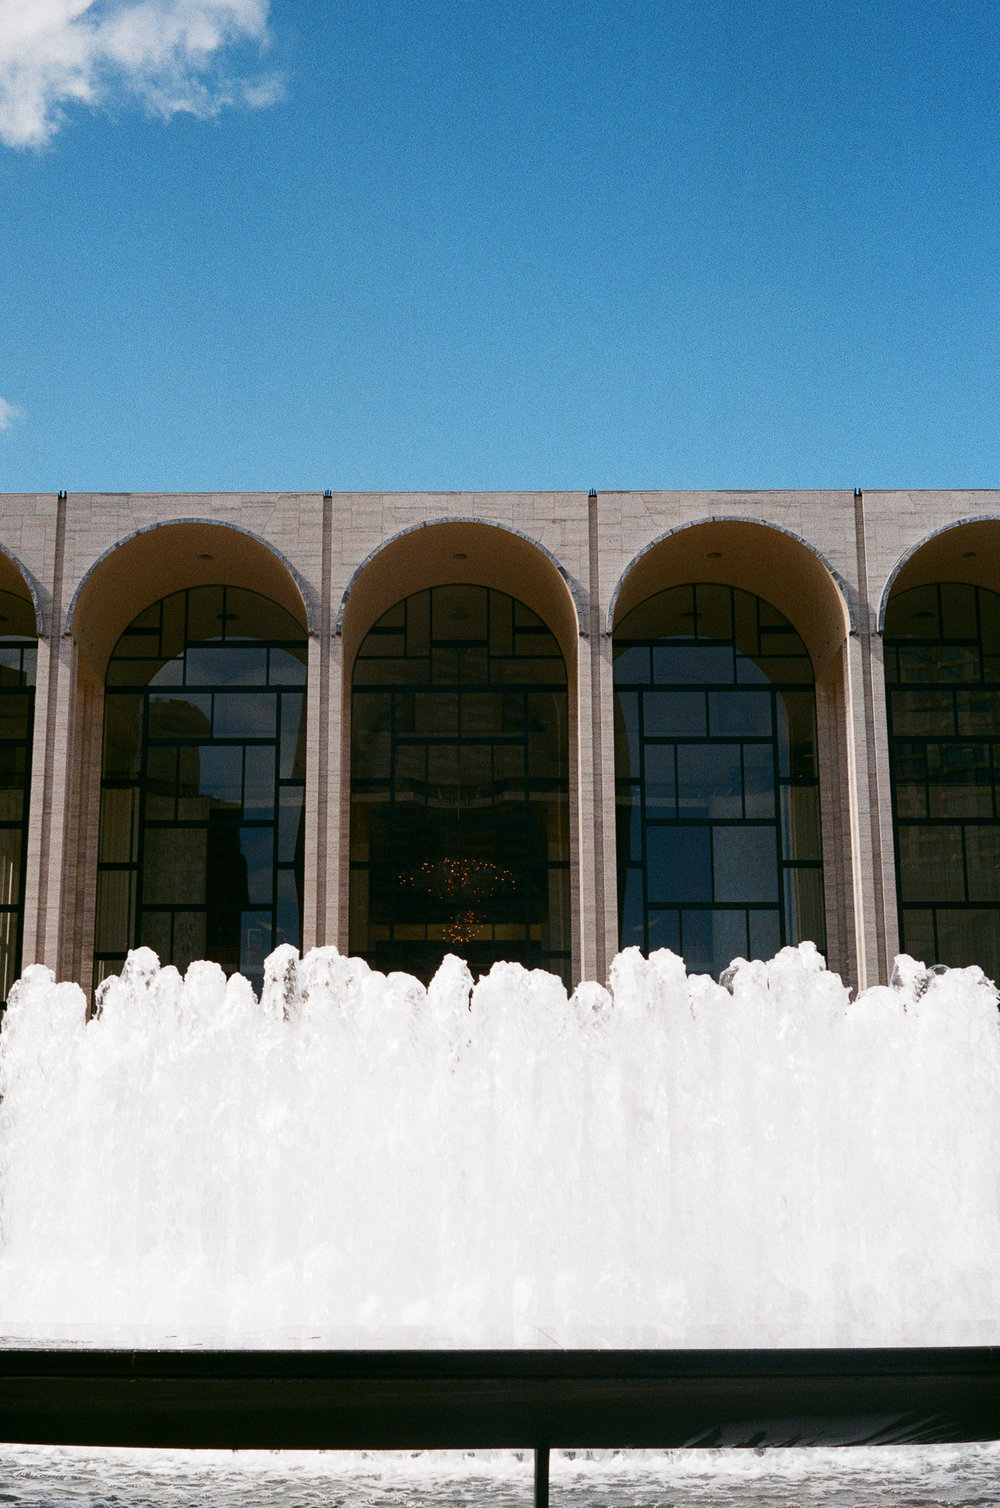 Lincoln Center fountains. Canonet QL17, Fuji Superia X-tra 400.